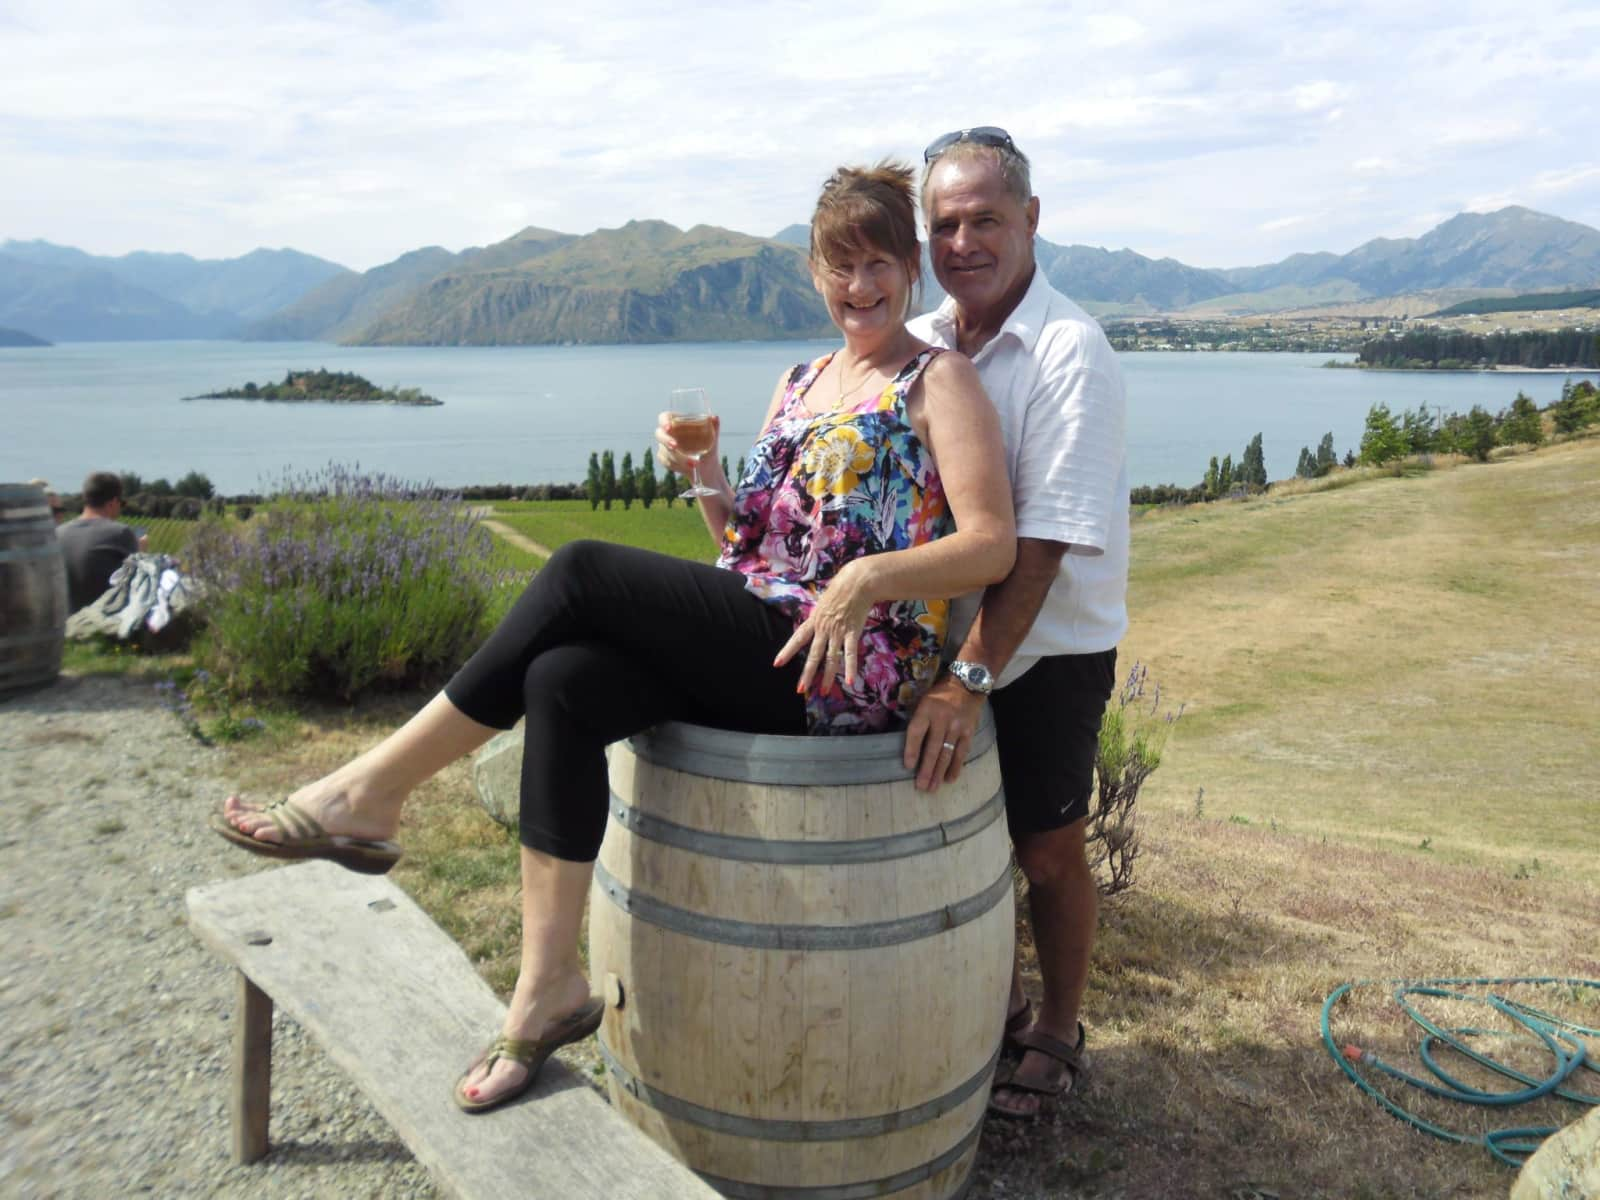 Vivienne & David from Christchurch, New Zealand